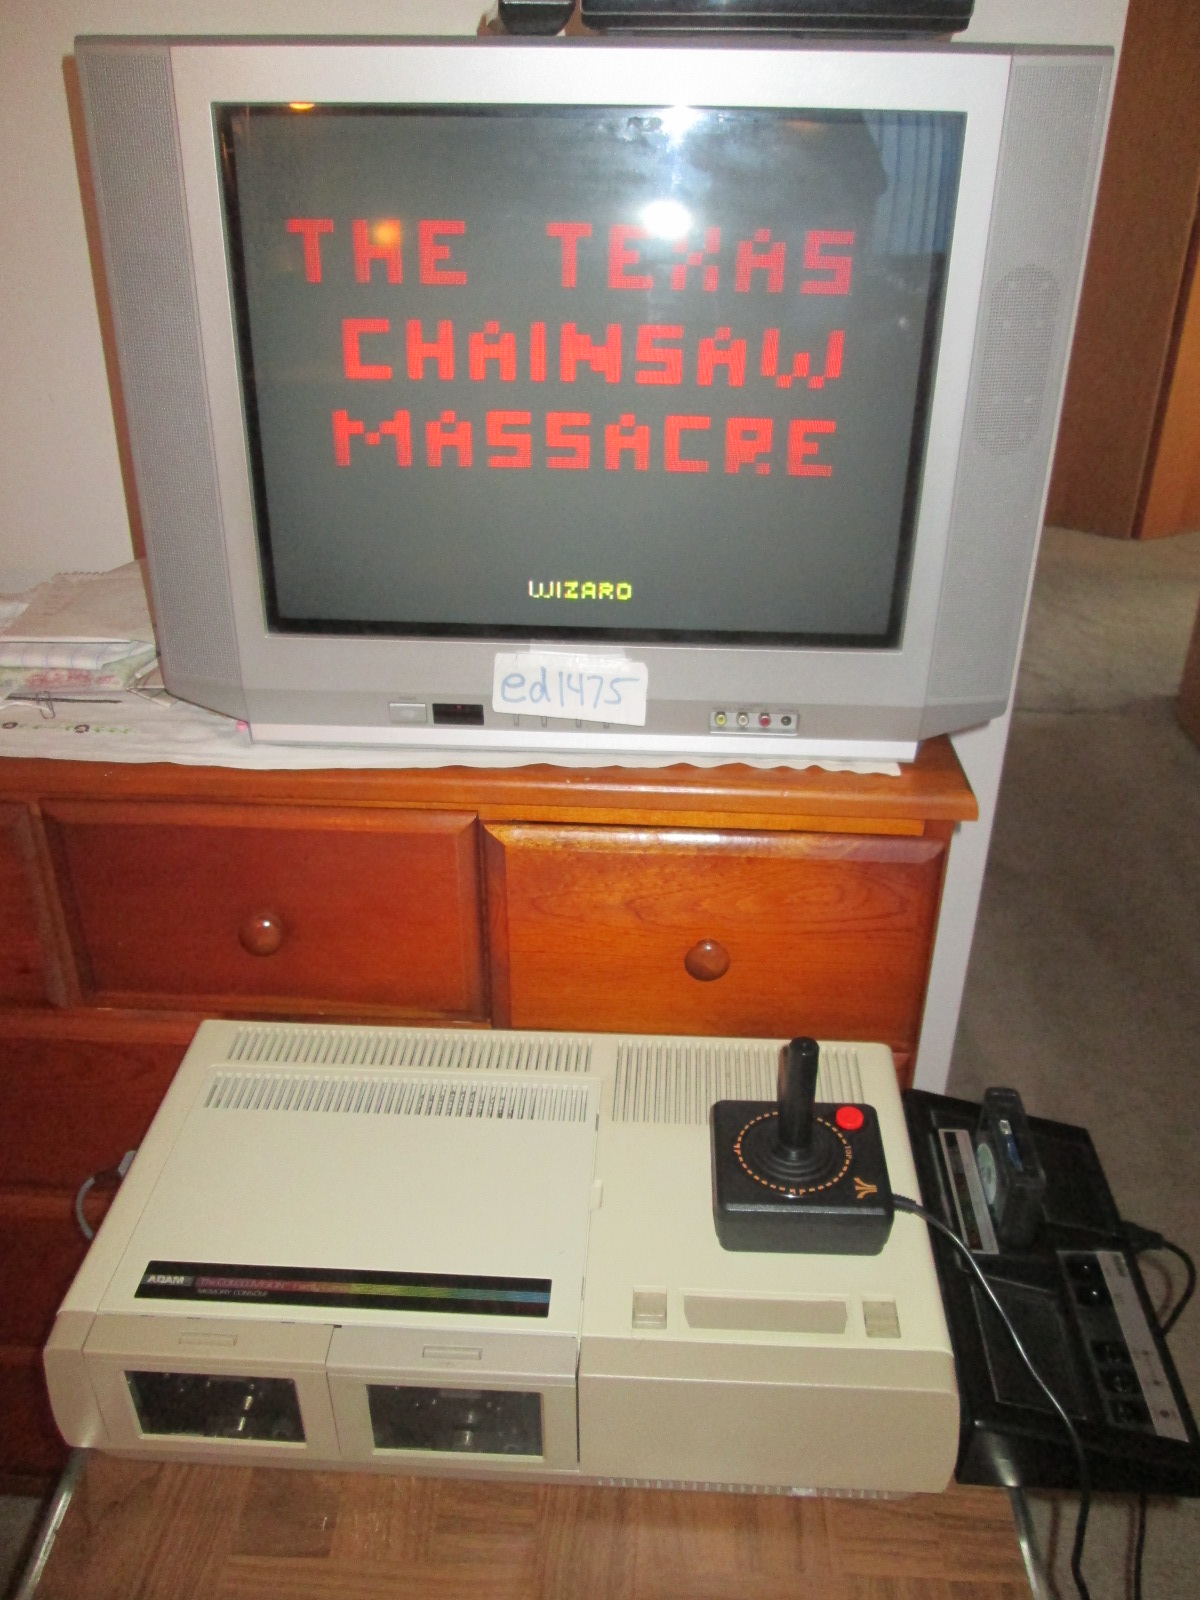 ed1475: Texas Chainsaw Massacre (Atari 2600 Novice/B) 10,000 points on 2016-10-28 18:41:47